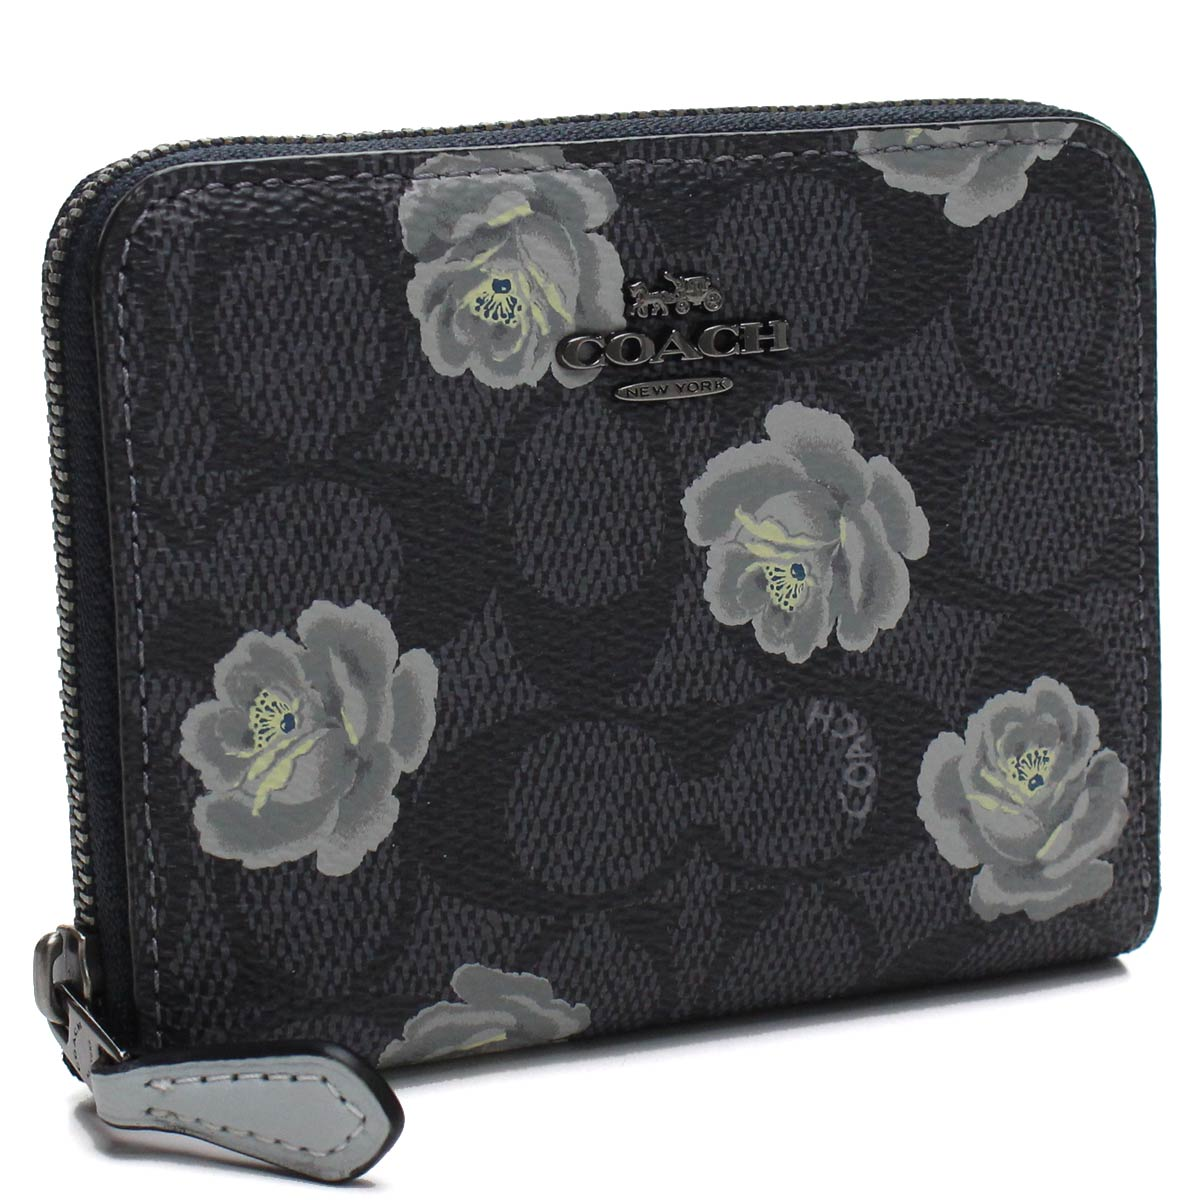 43fc6ad3148e Bighit The total brand wholesale  Coach COACH flower print signature  compact round fastener wallet 31825 DKO3O black multicolored